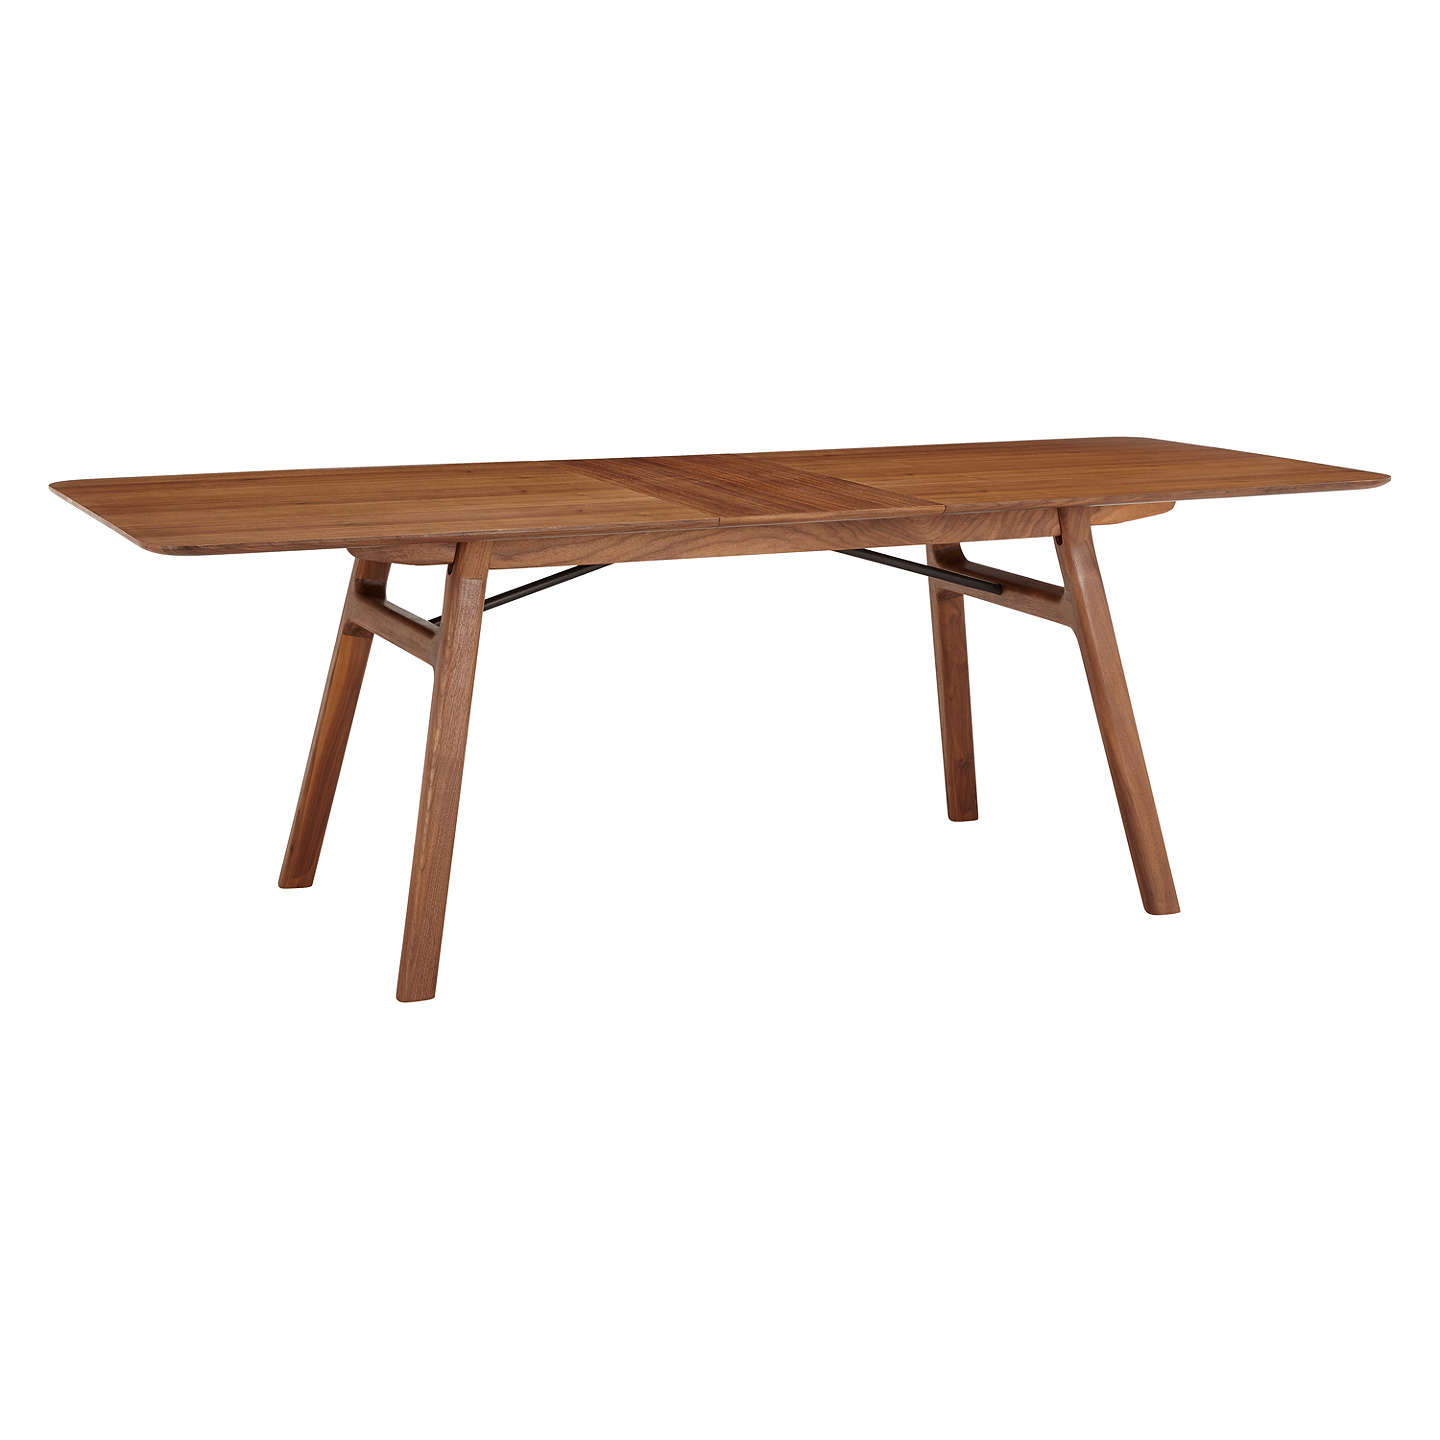 Design project by john lewis 8 10 seater extending dining table at john lewis for John lewis home design service reviews